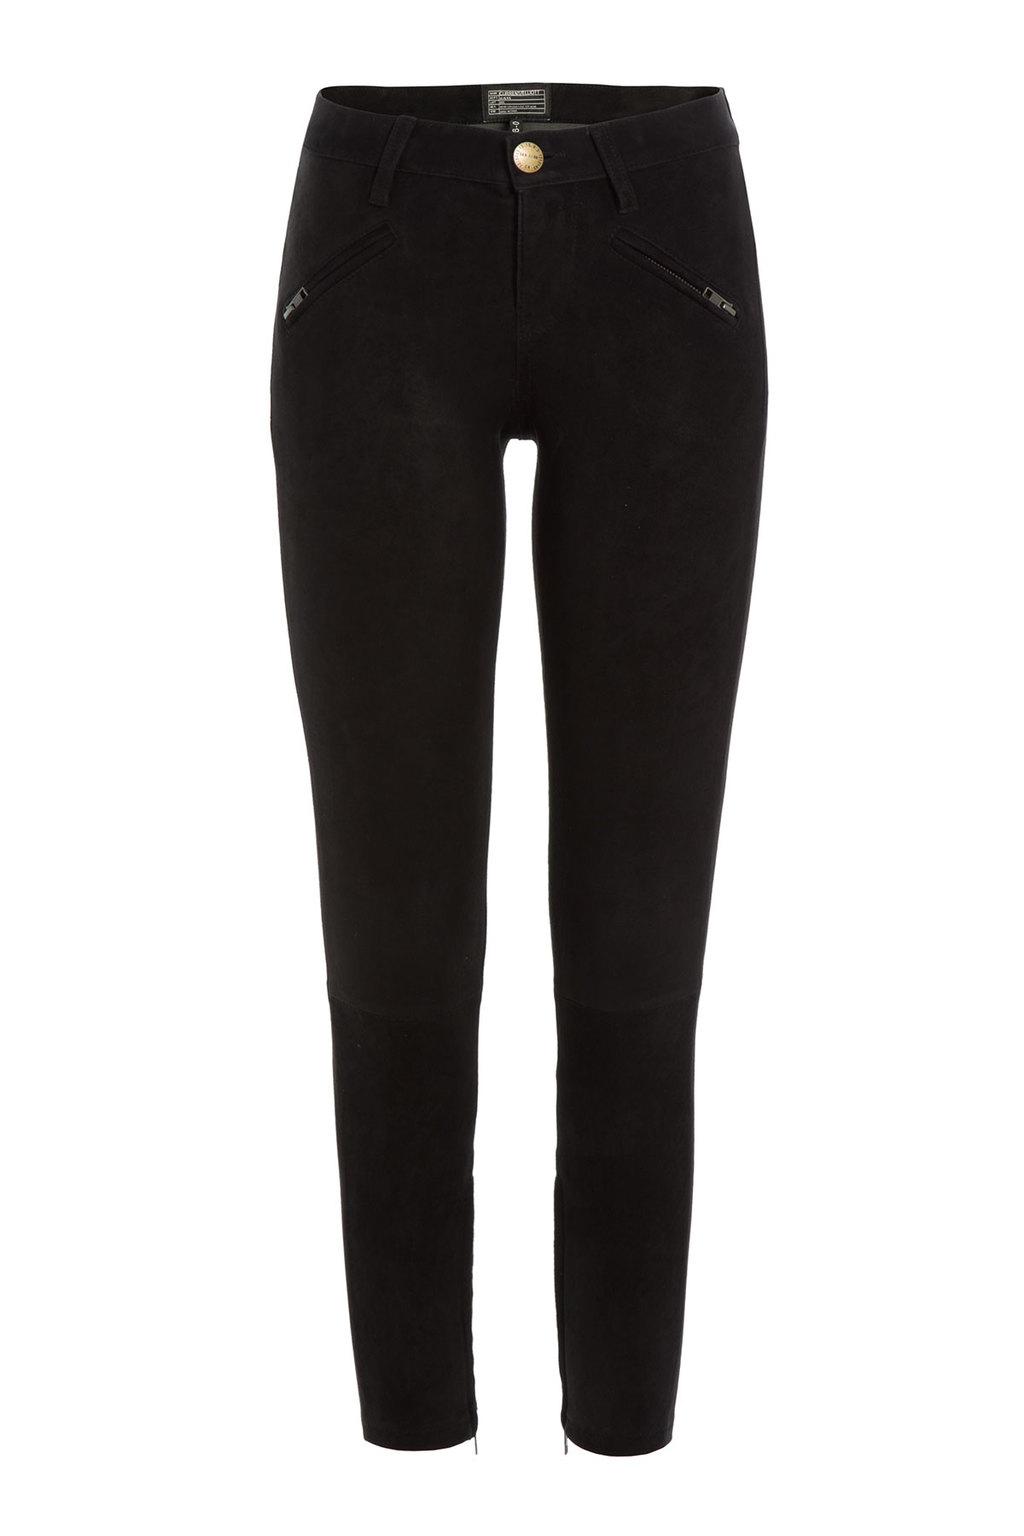 Skinny Suede Pants Black - length: standard; pattern: plain; pocket detail: small back pockets; waist: mid/regular rise; predominant colour: black; occasions: casual, evening, creative work; fibres: leather - 100%; fit: skinny/tight leg; pattern type: fabric; texture group: suede; style: standard; season: a/w 2015